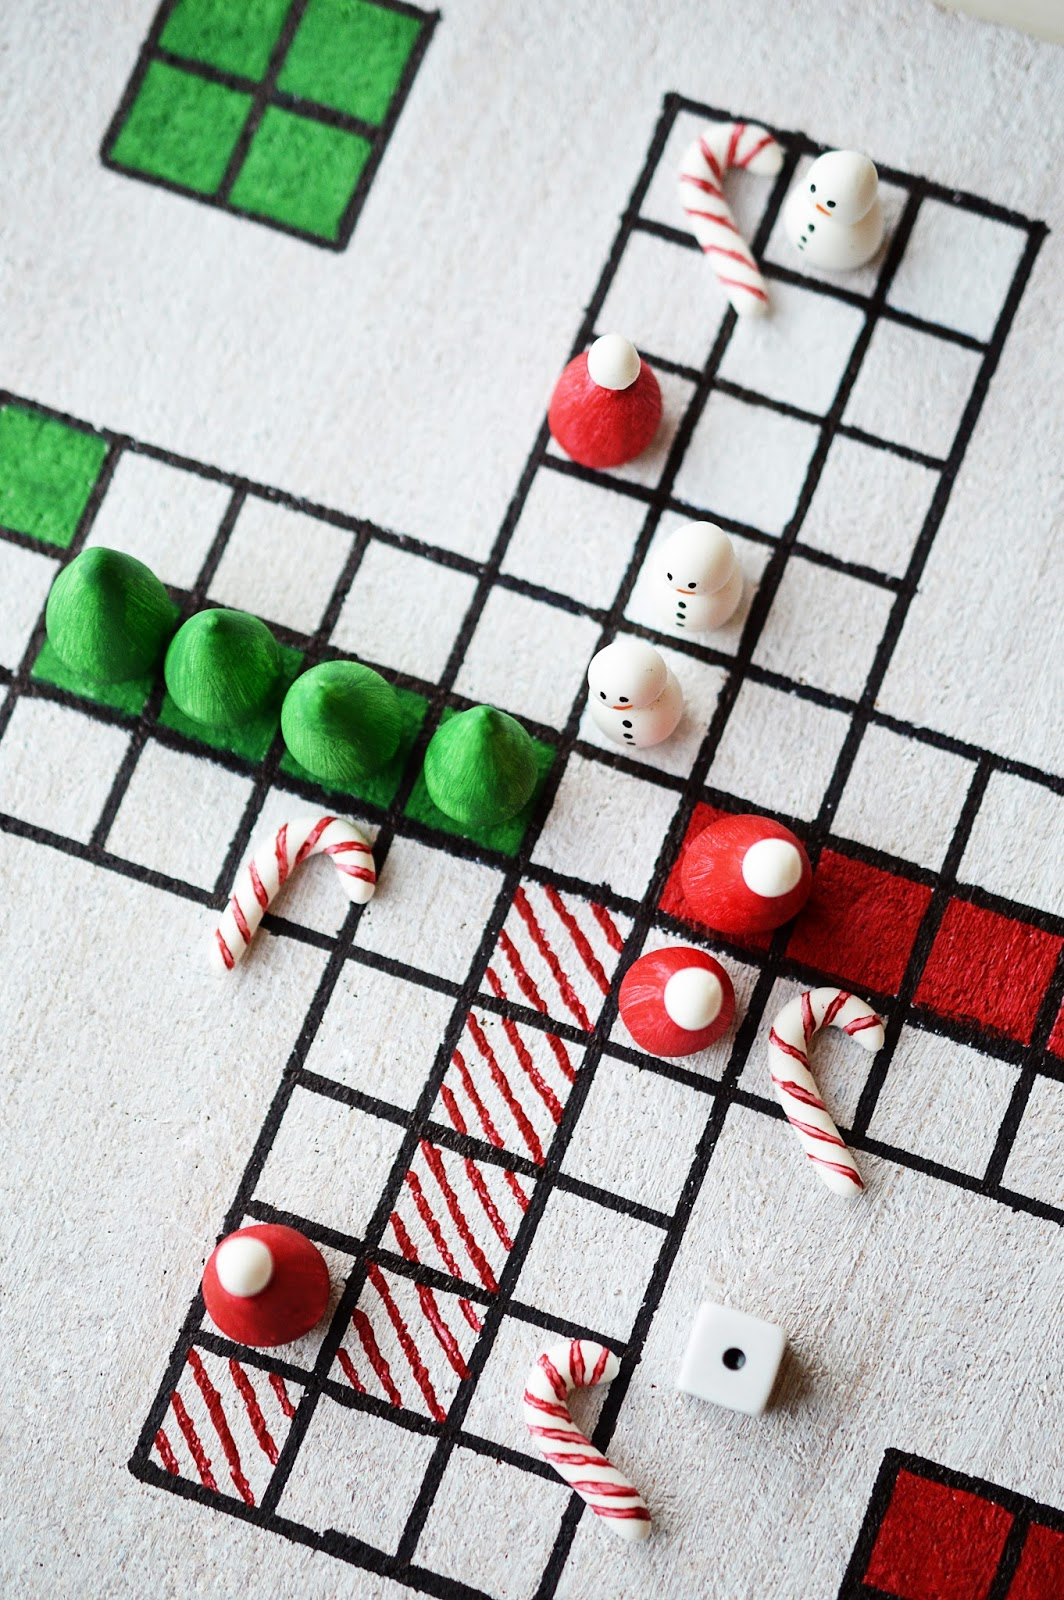 diy christmas board game santa rgere dich nicht mottes blog - Family Games To Play At Christmas